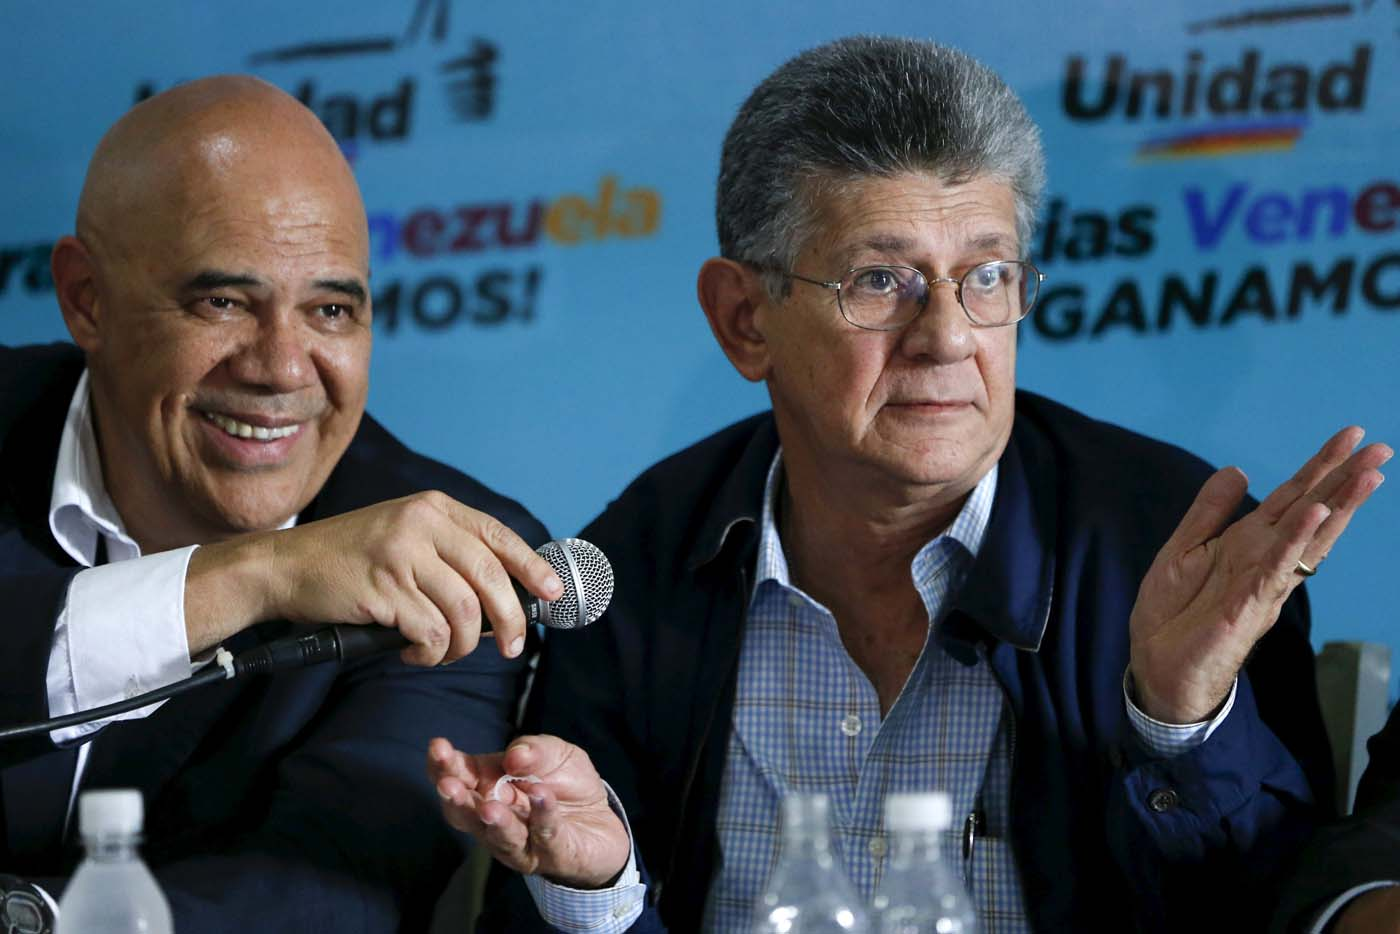 Henry Ramos Allup (R), a new elected deputy from Venezuelan coalition of opposition parties (MUD) speaks next to Jesus Torrealba, secretary of MUD during a news conference in Caracas, Venezuela, December 11, 2015. REUTERS/Carlos Garcia Rawlins